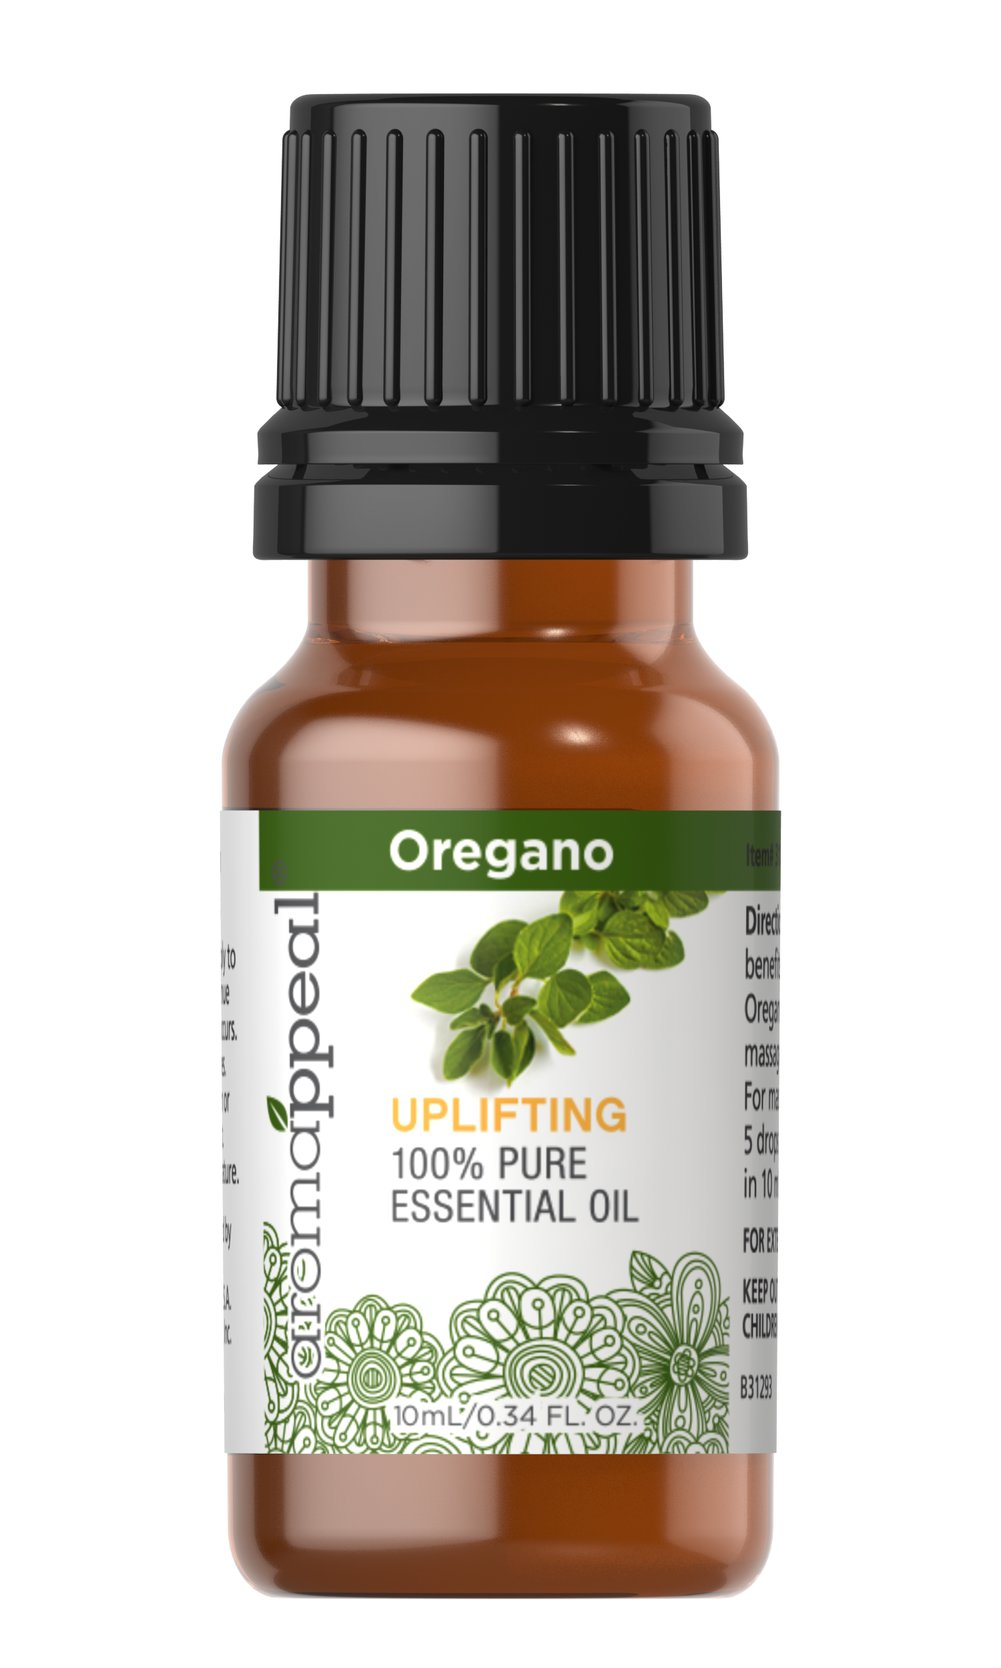 Oregano 100% Pure Essential Oil Delight your senses with the total body purification of Oregano Oil.  <p></p>Punctuated by its strong, spicy, herbal aroma, Oregano is a cleansing, invigorating oil that can leave you feeling totally revitalized. 10 ml Oil  $12.99